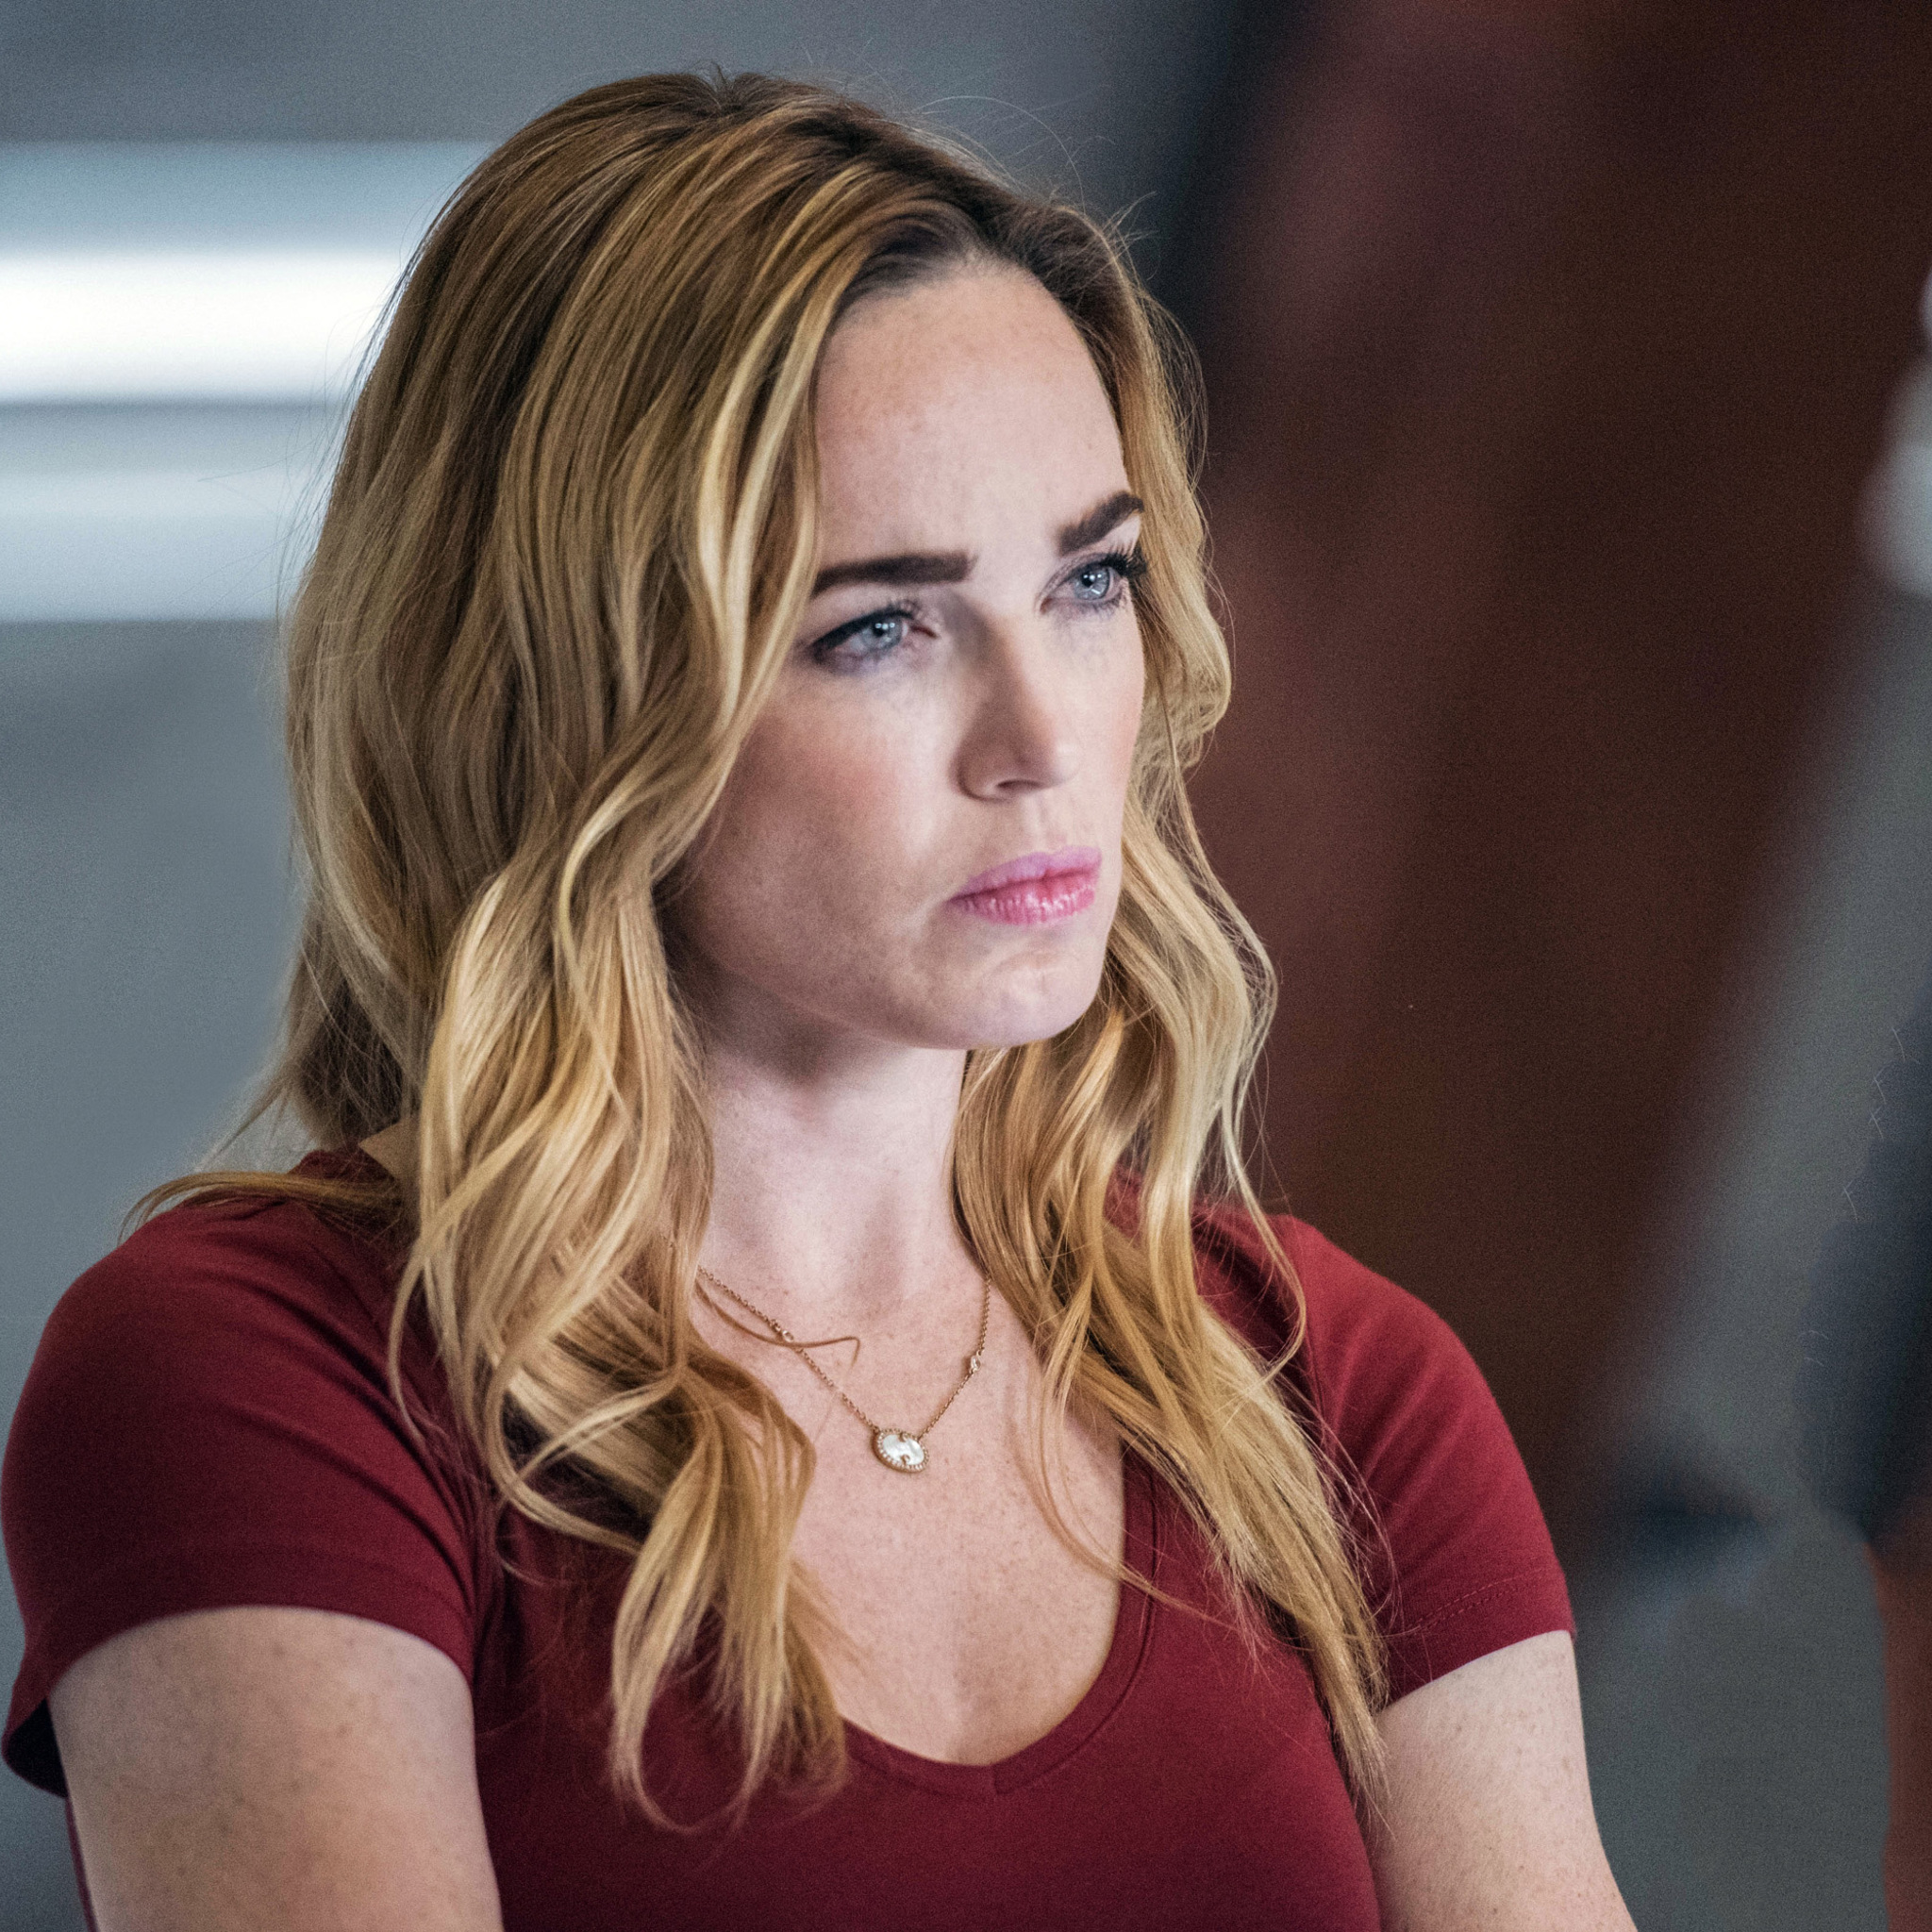 caity-lotz-in-legends-of-tomorrow-2018-en.jpg